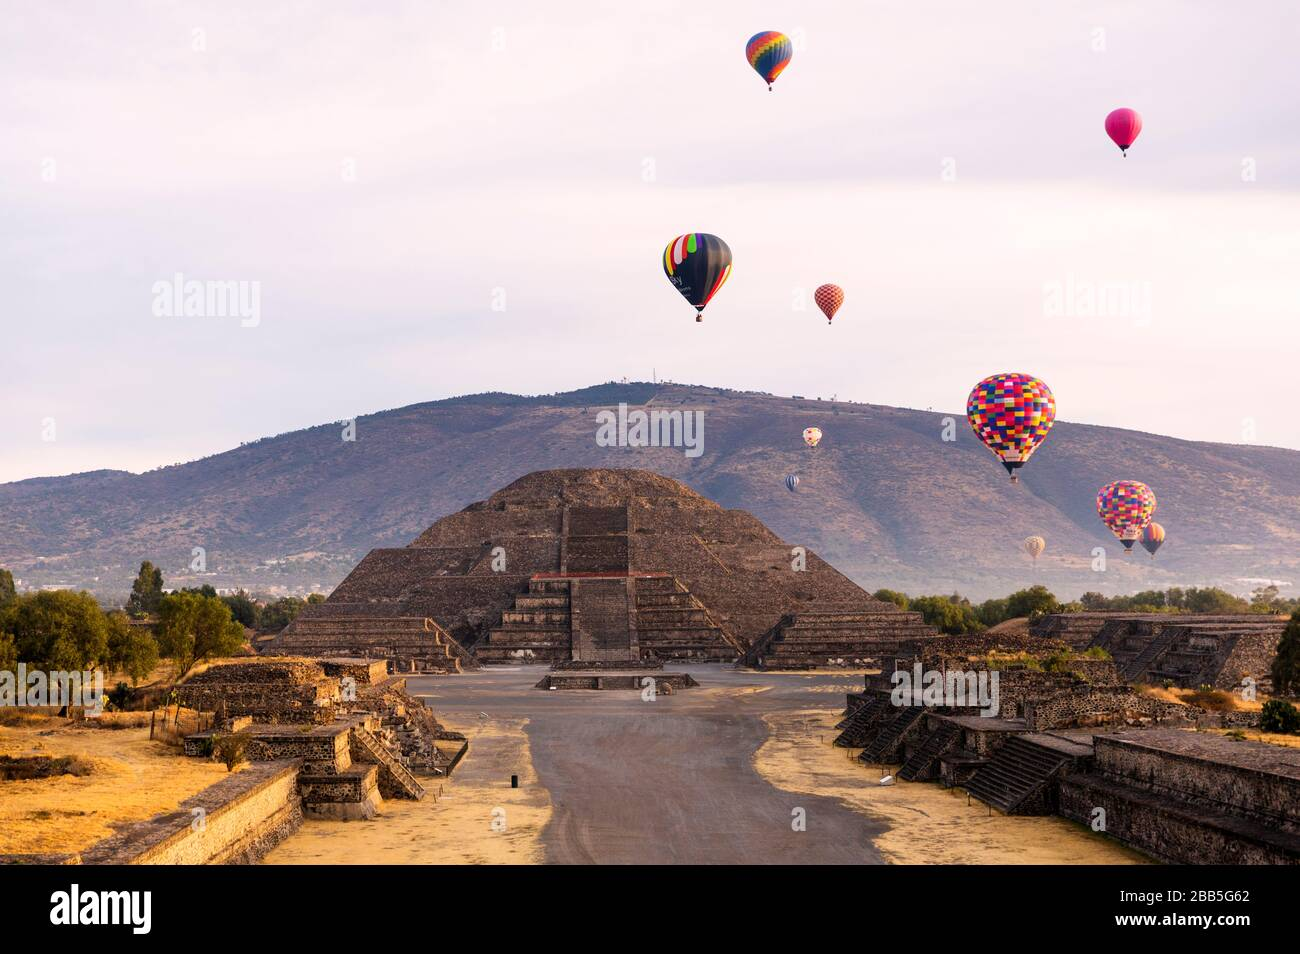 Mexico, Mexico City, Teotihuacán archaeological zone, Mexico's largest pre-Hispanic empire. Hot air balloons at sunrise over the Pyrámide del Sol Stock Photo